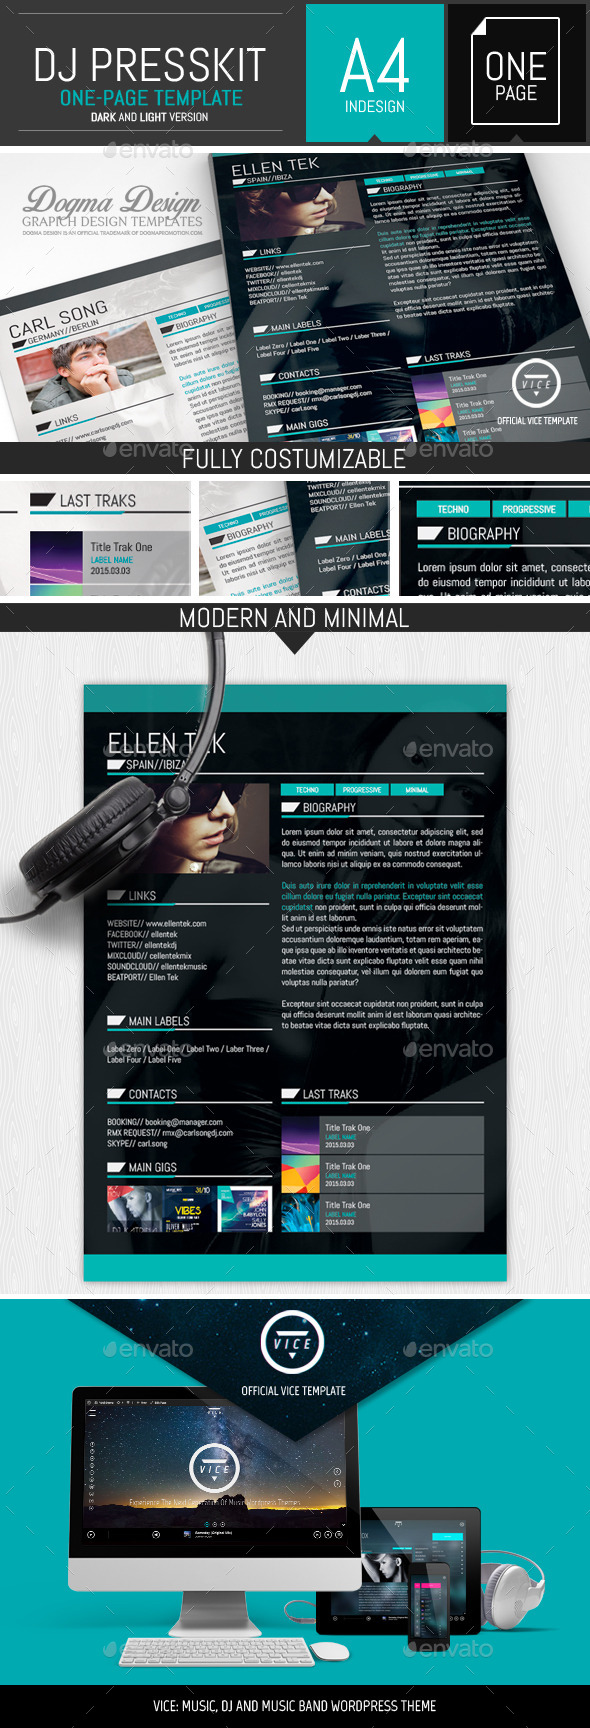 Vice Dj  Musician Onepage Resume Indesign Template By Dogmadesign